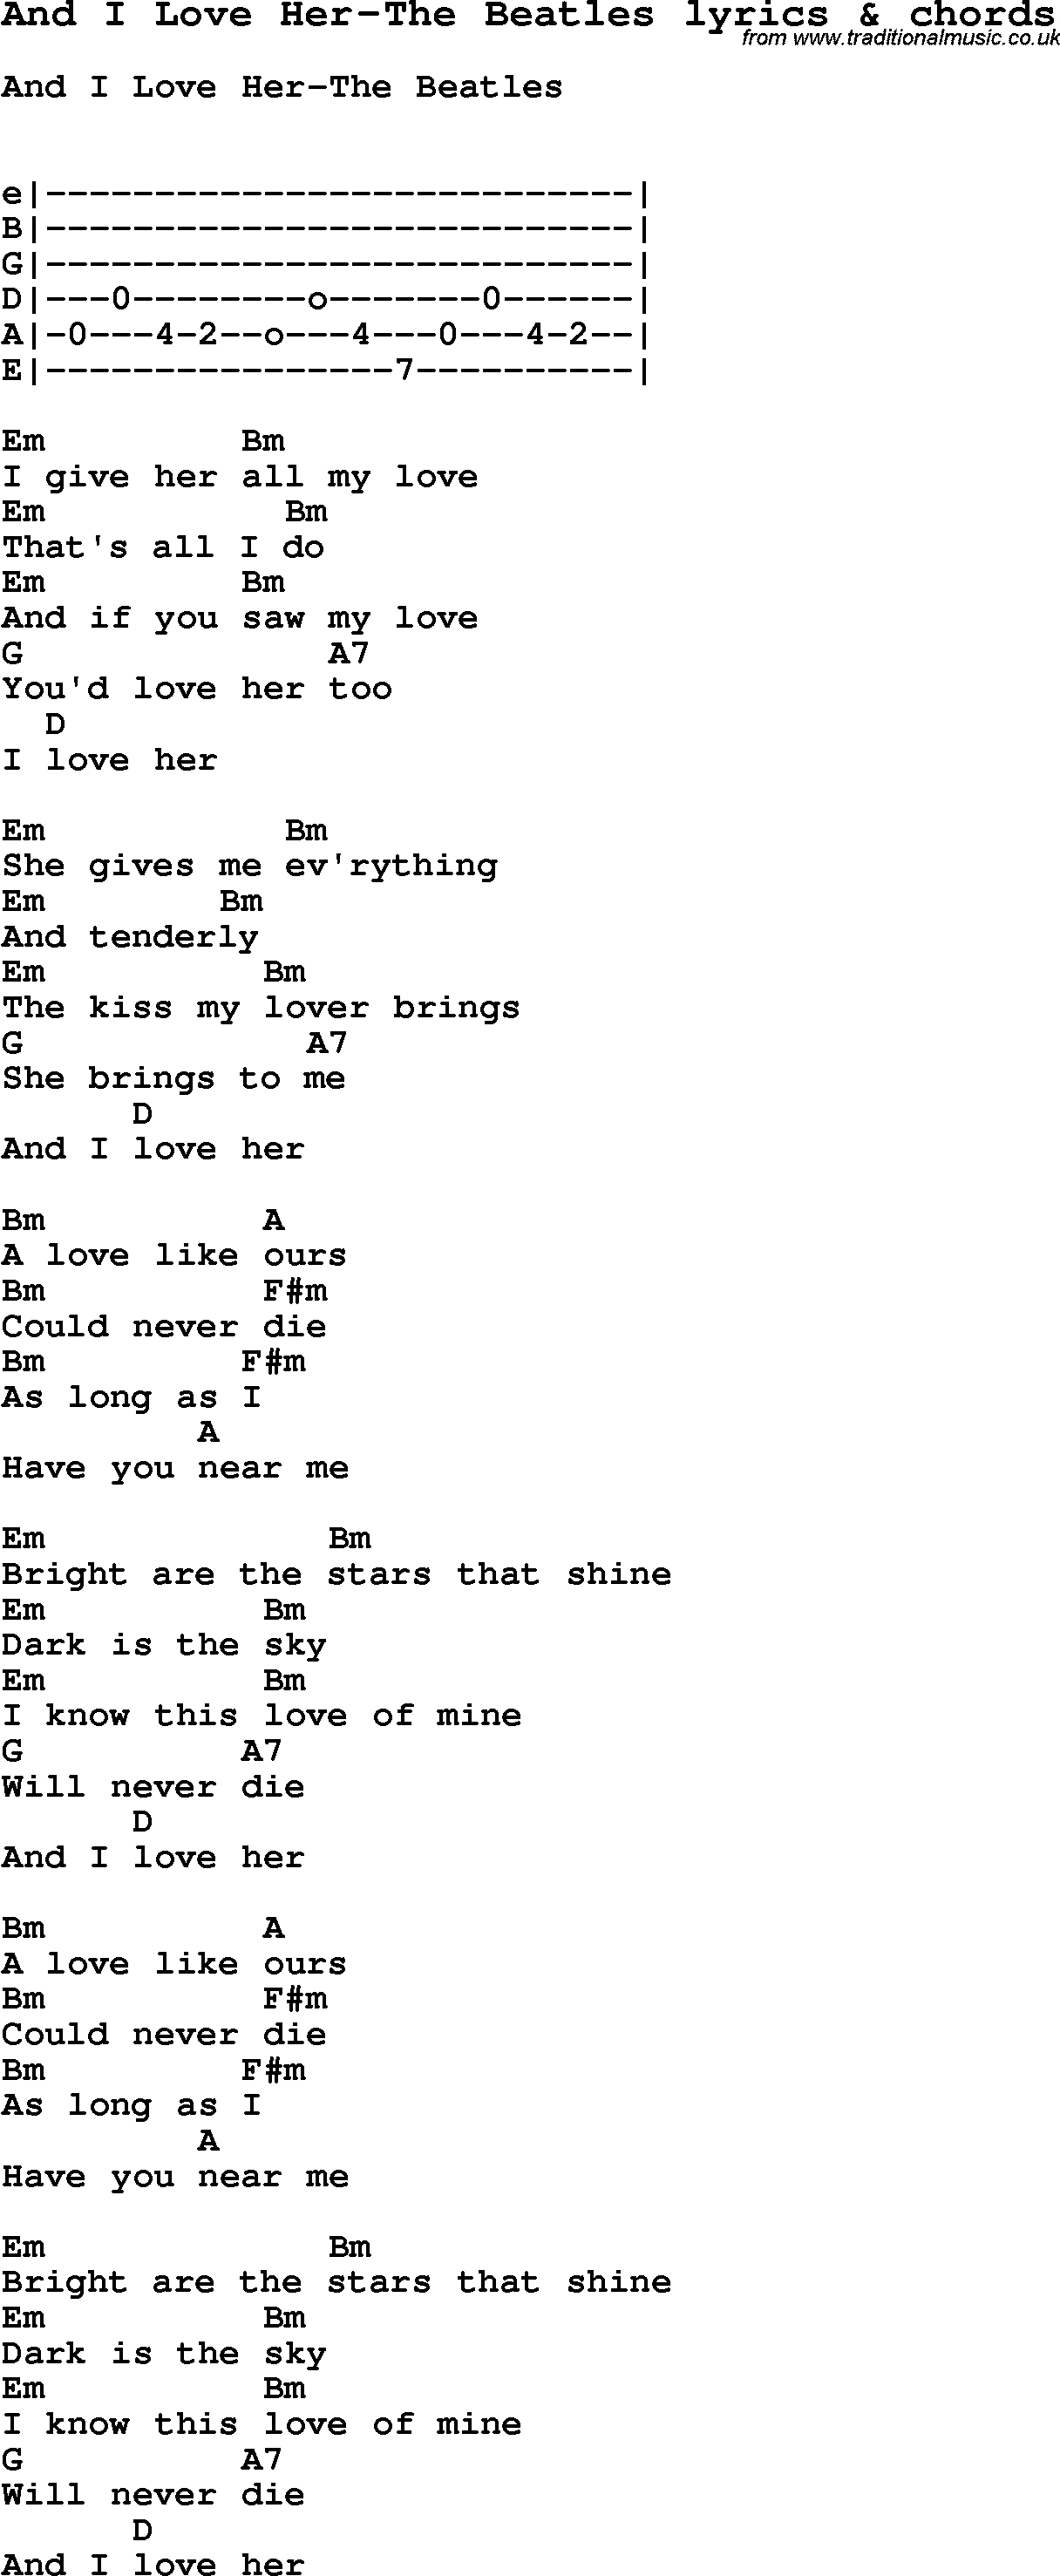 Love Song Lyrics For:and I Love Her-The Beatles With Chords. - Free Printable Song Lyrics With Guitar Chords